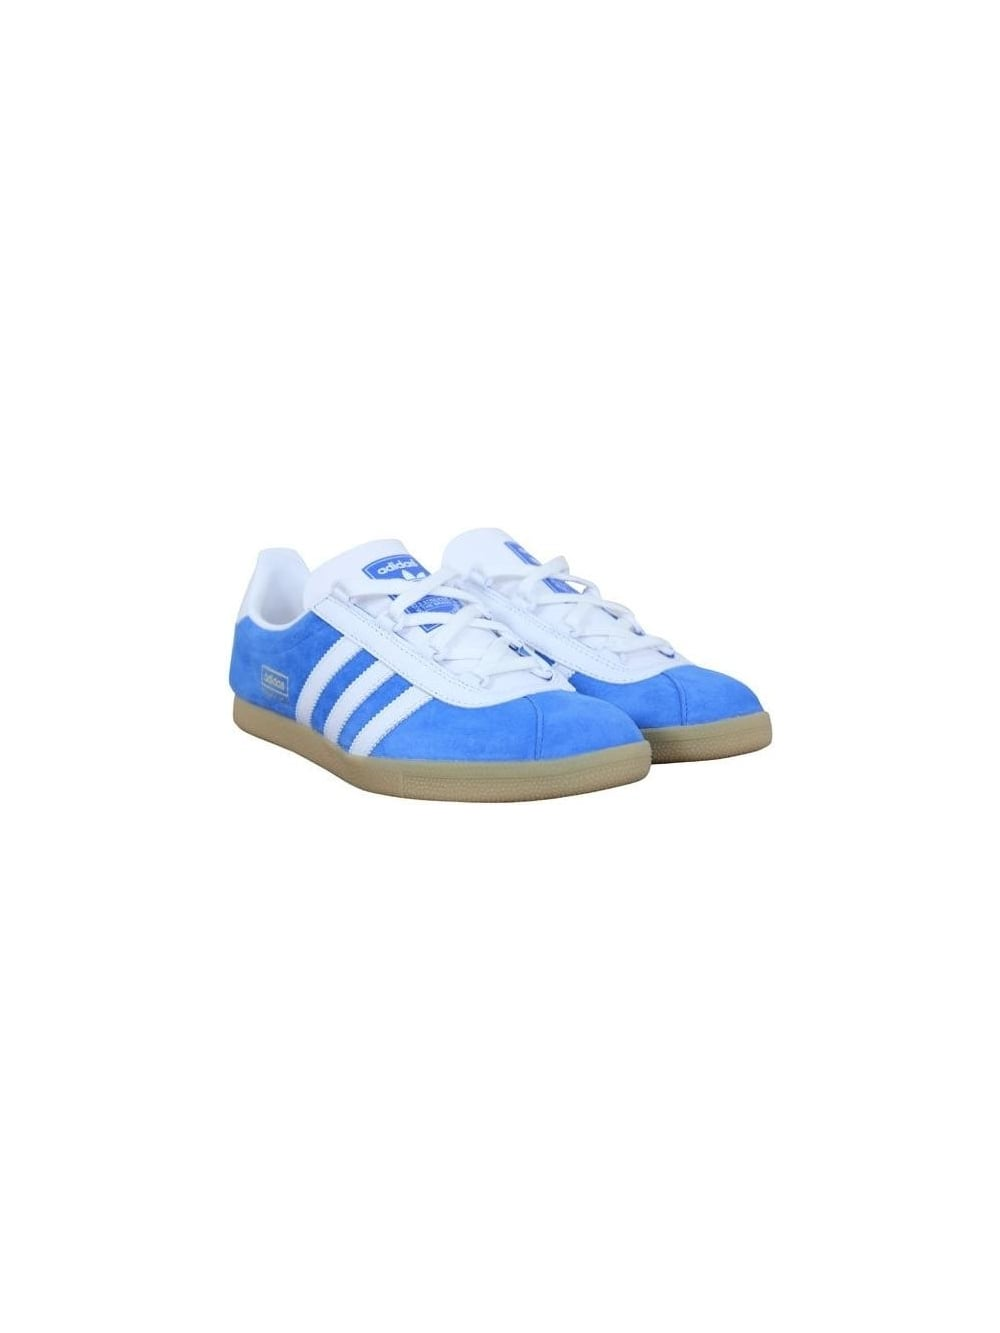 100% authentic 458f3 0b265 Trimm Star Trainers - Brittany Blue